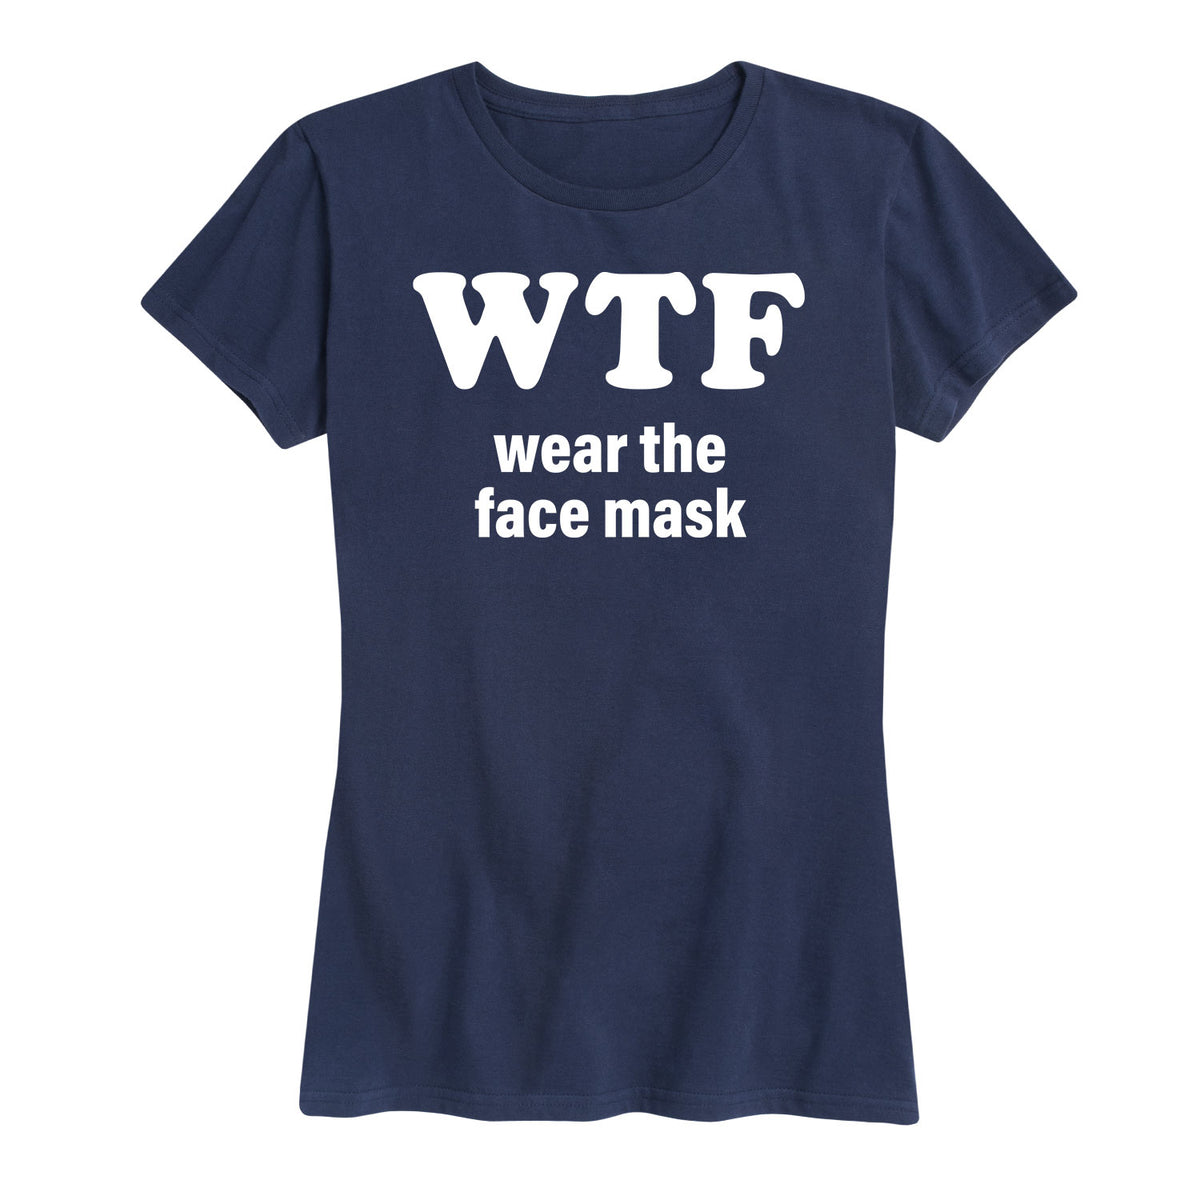 Wear The Face Mask - Women's Short Sleeve T-Shirt